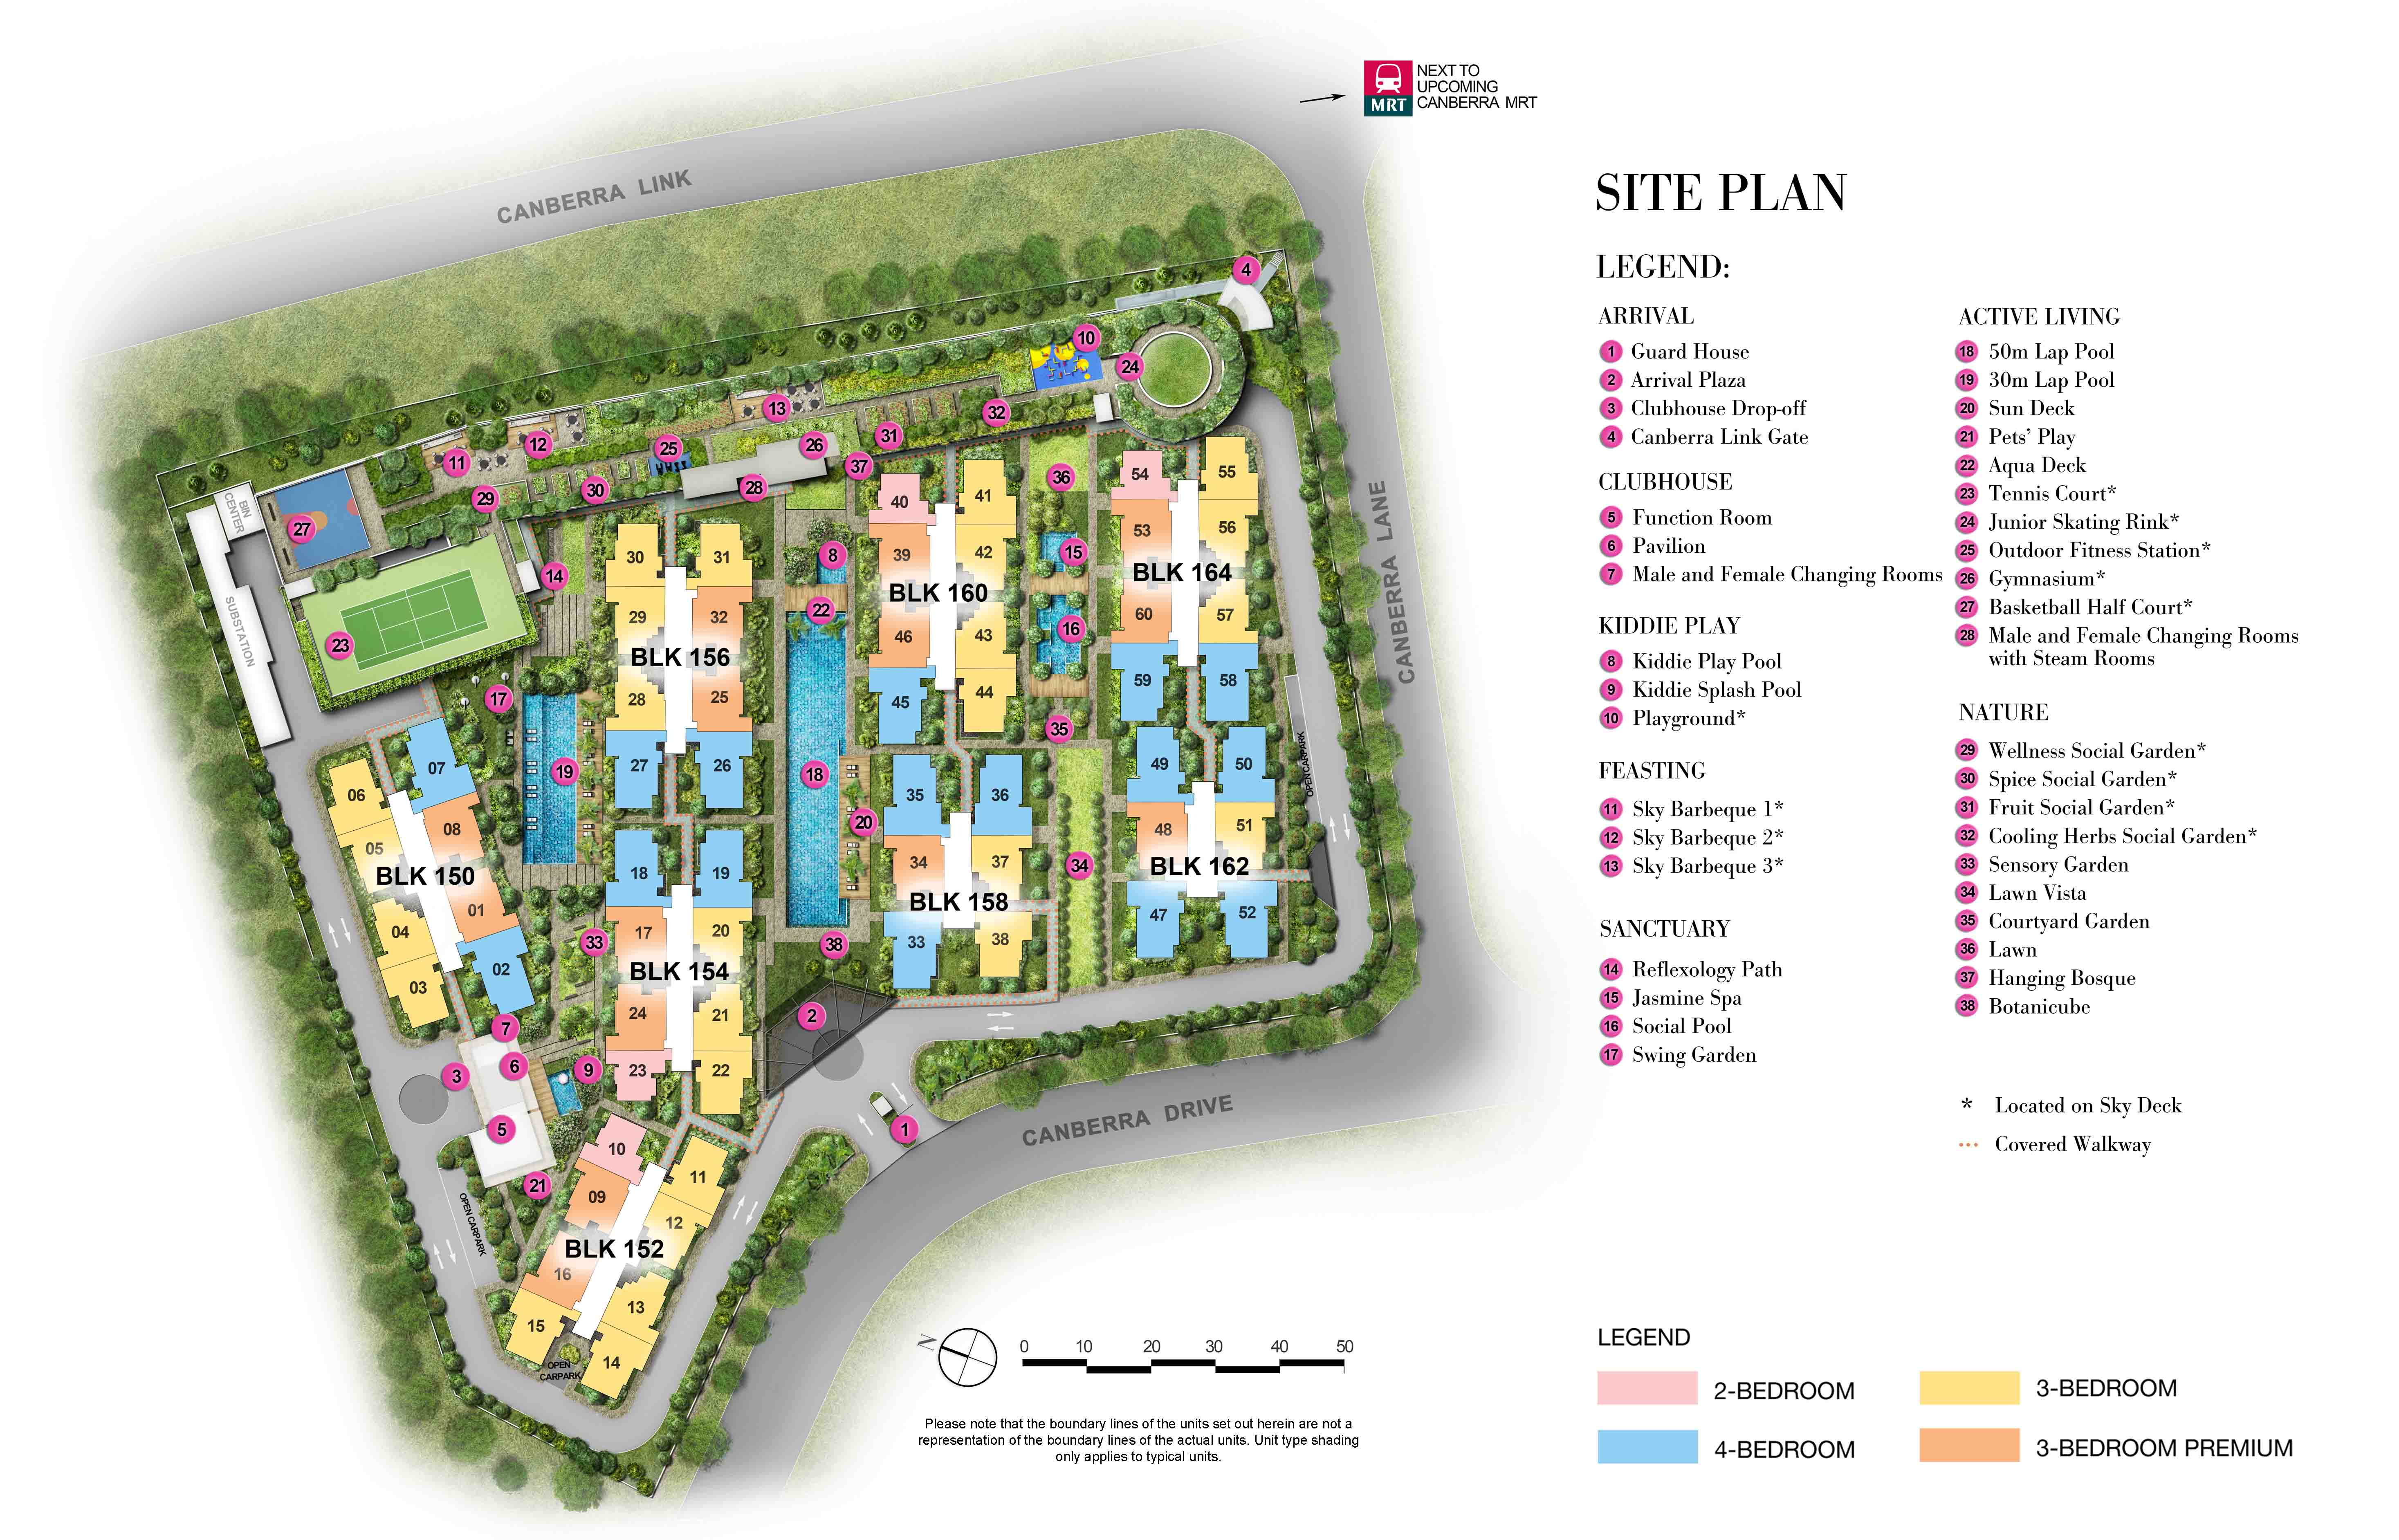 Brownstone site plan june 15 June FINAL with disclaimer